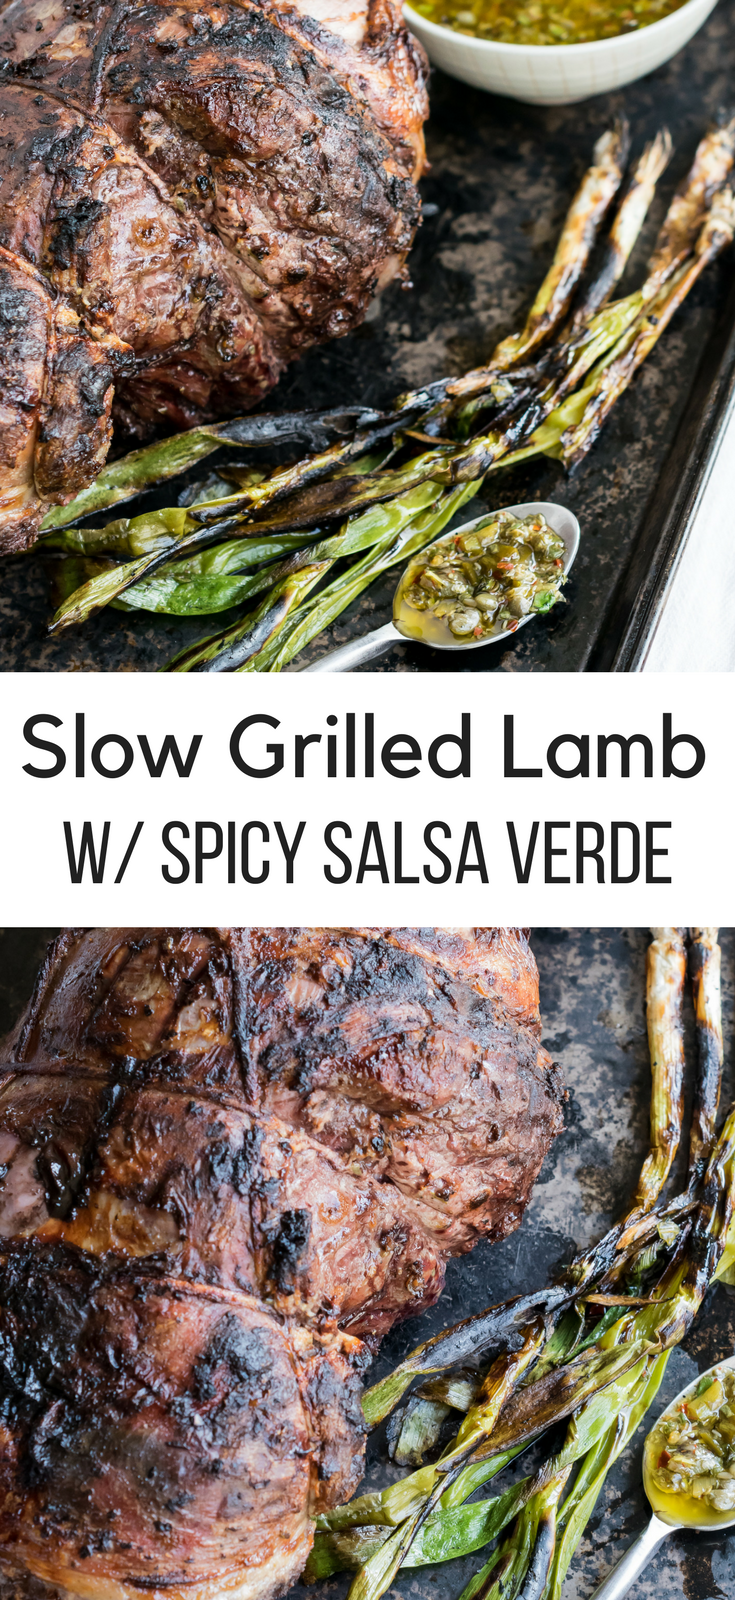 Slow Grilled Lamb